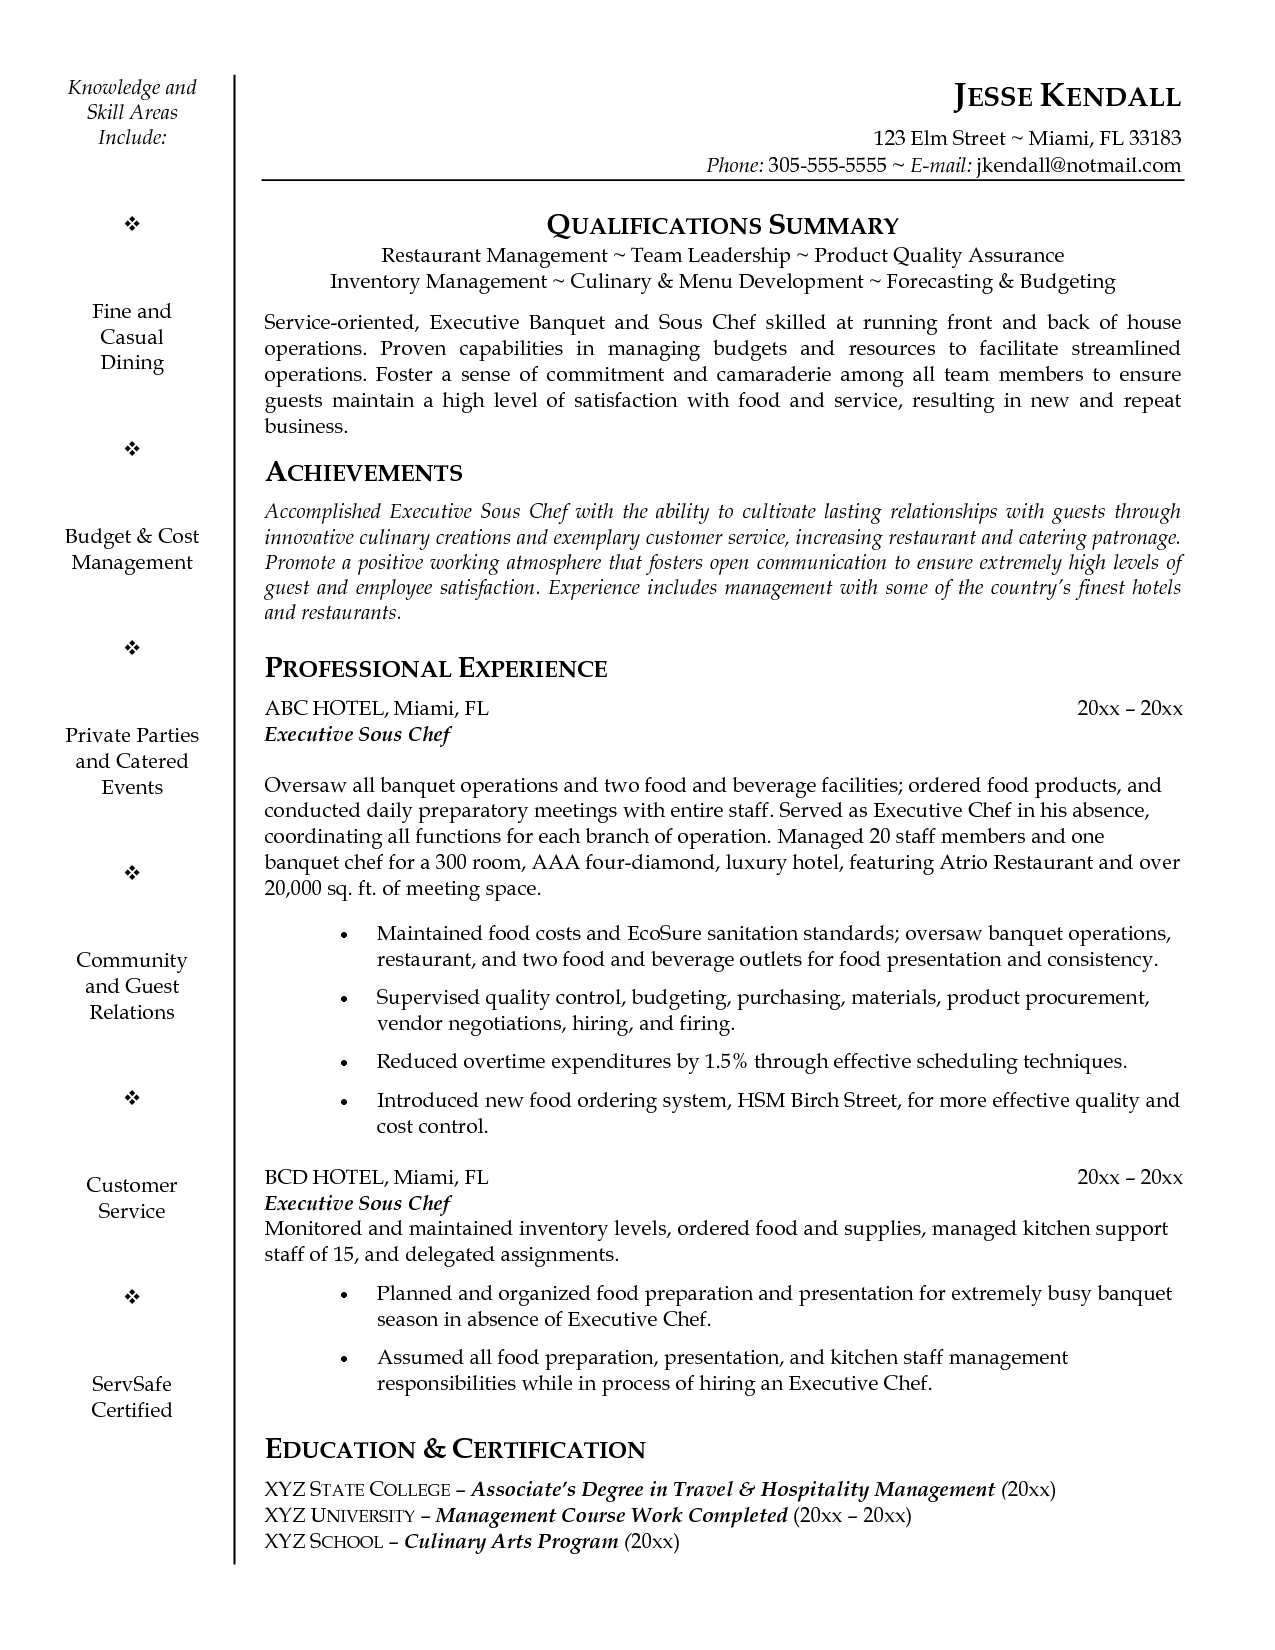 Executive Chef Resume Template Brilliant Sous Chef Resume Examples  Httpwwwjobresumewebsitesouschef